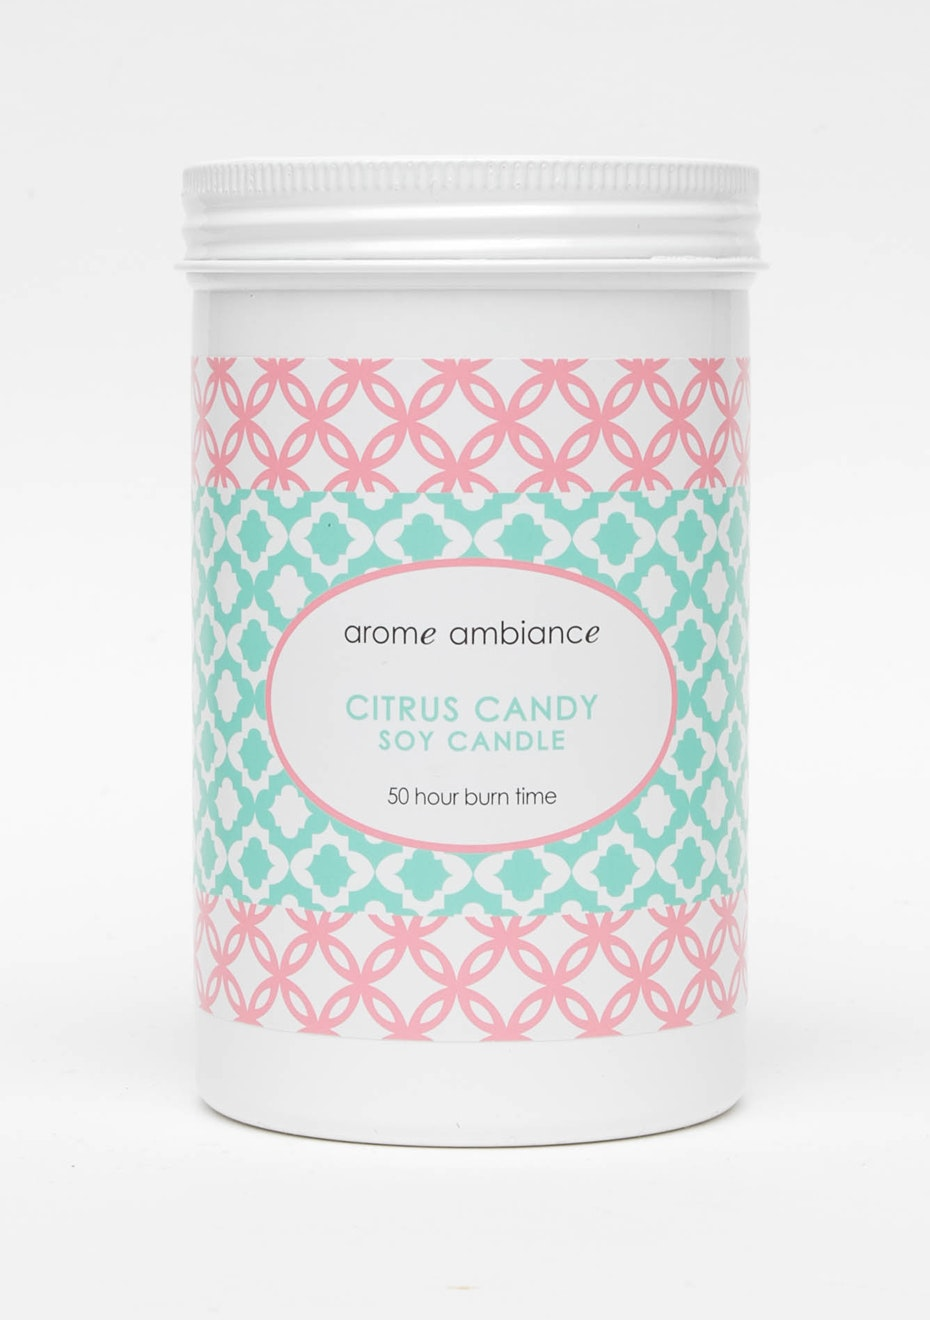 Arome Ambiance Geo Pop Citrus Candy Soy Candle 50Hr